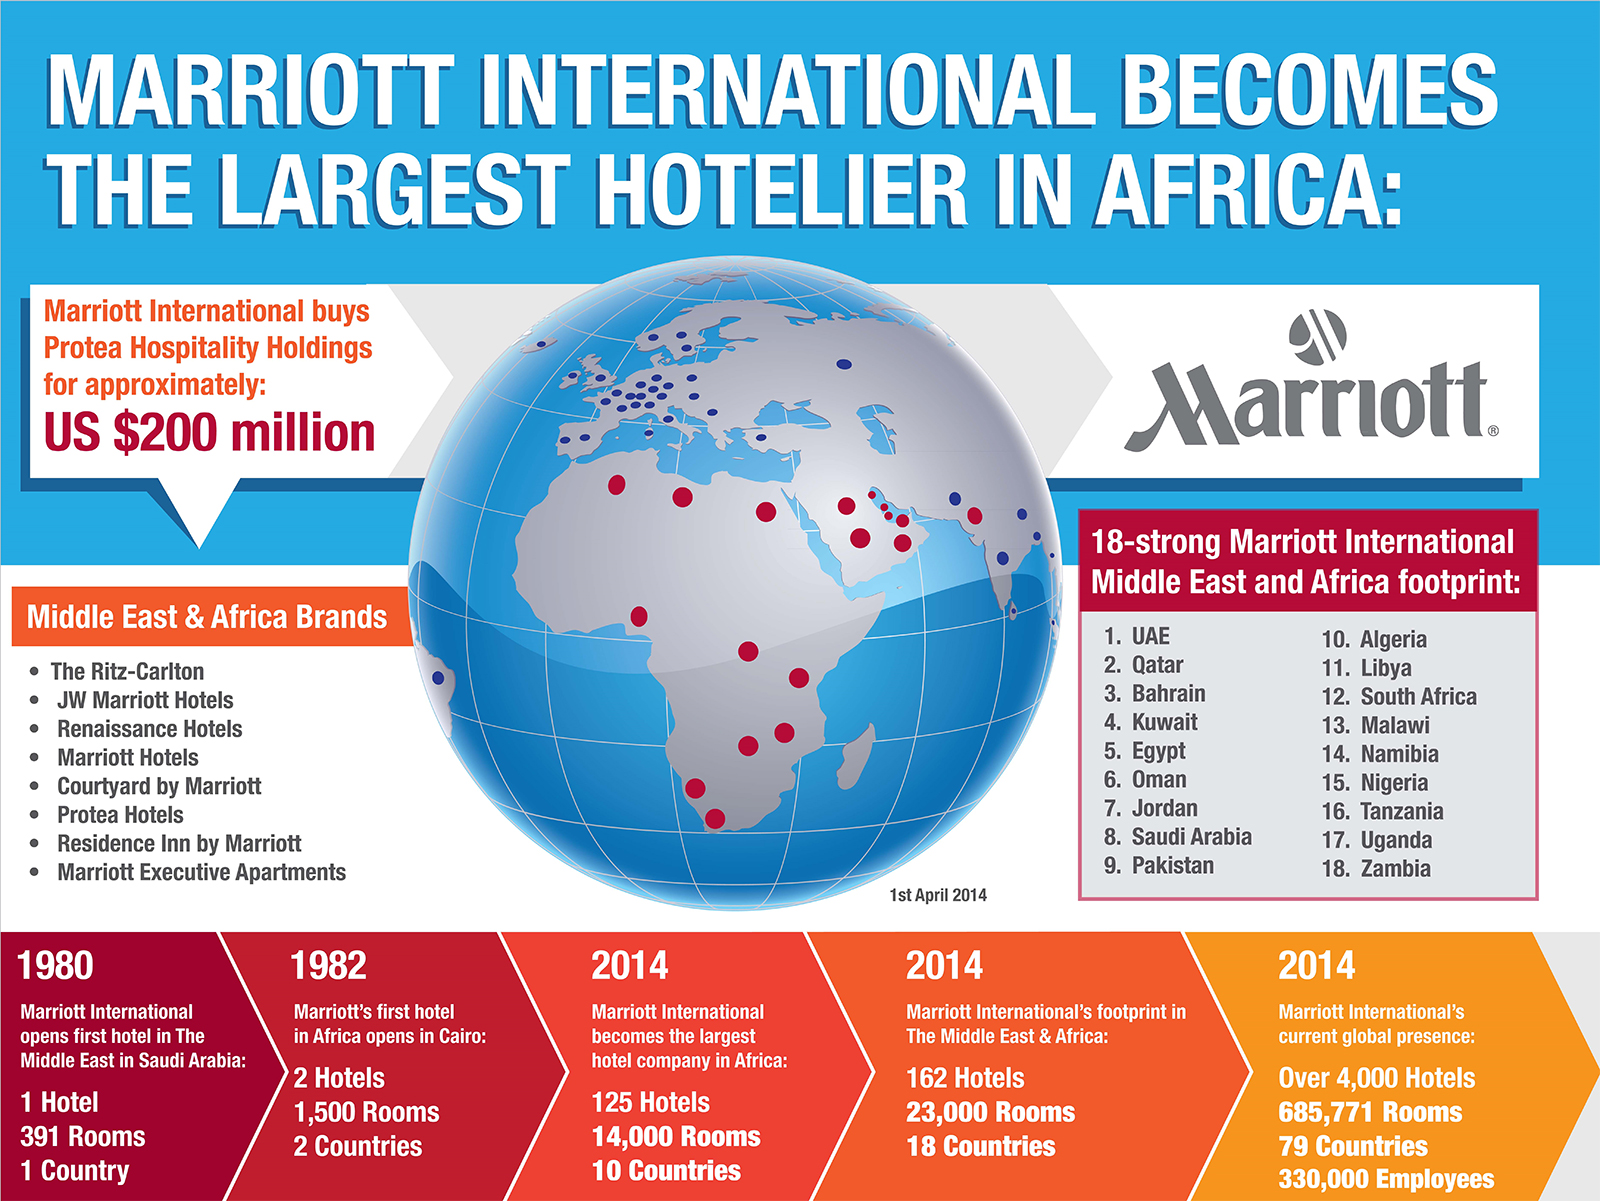 Marriott International Completes Acquisition Of Protea Hospitality Group Becomes The Largest Hotel Company In Africa